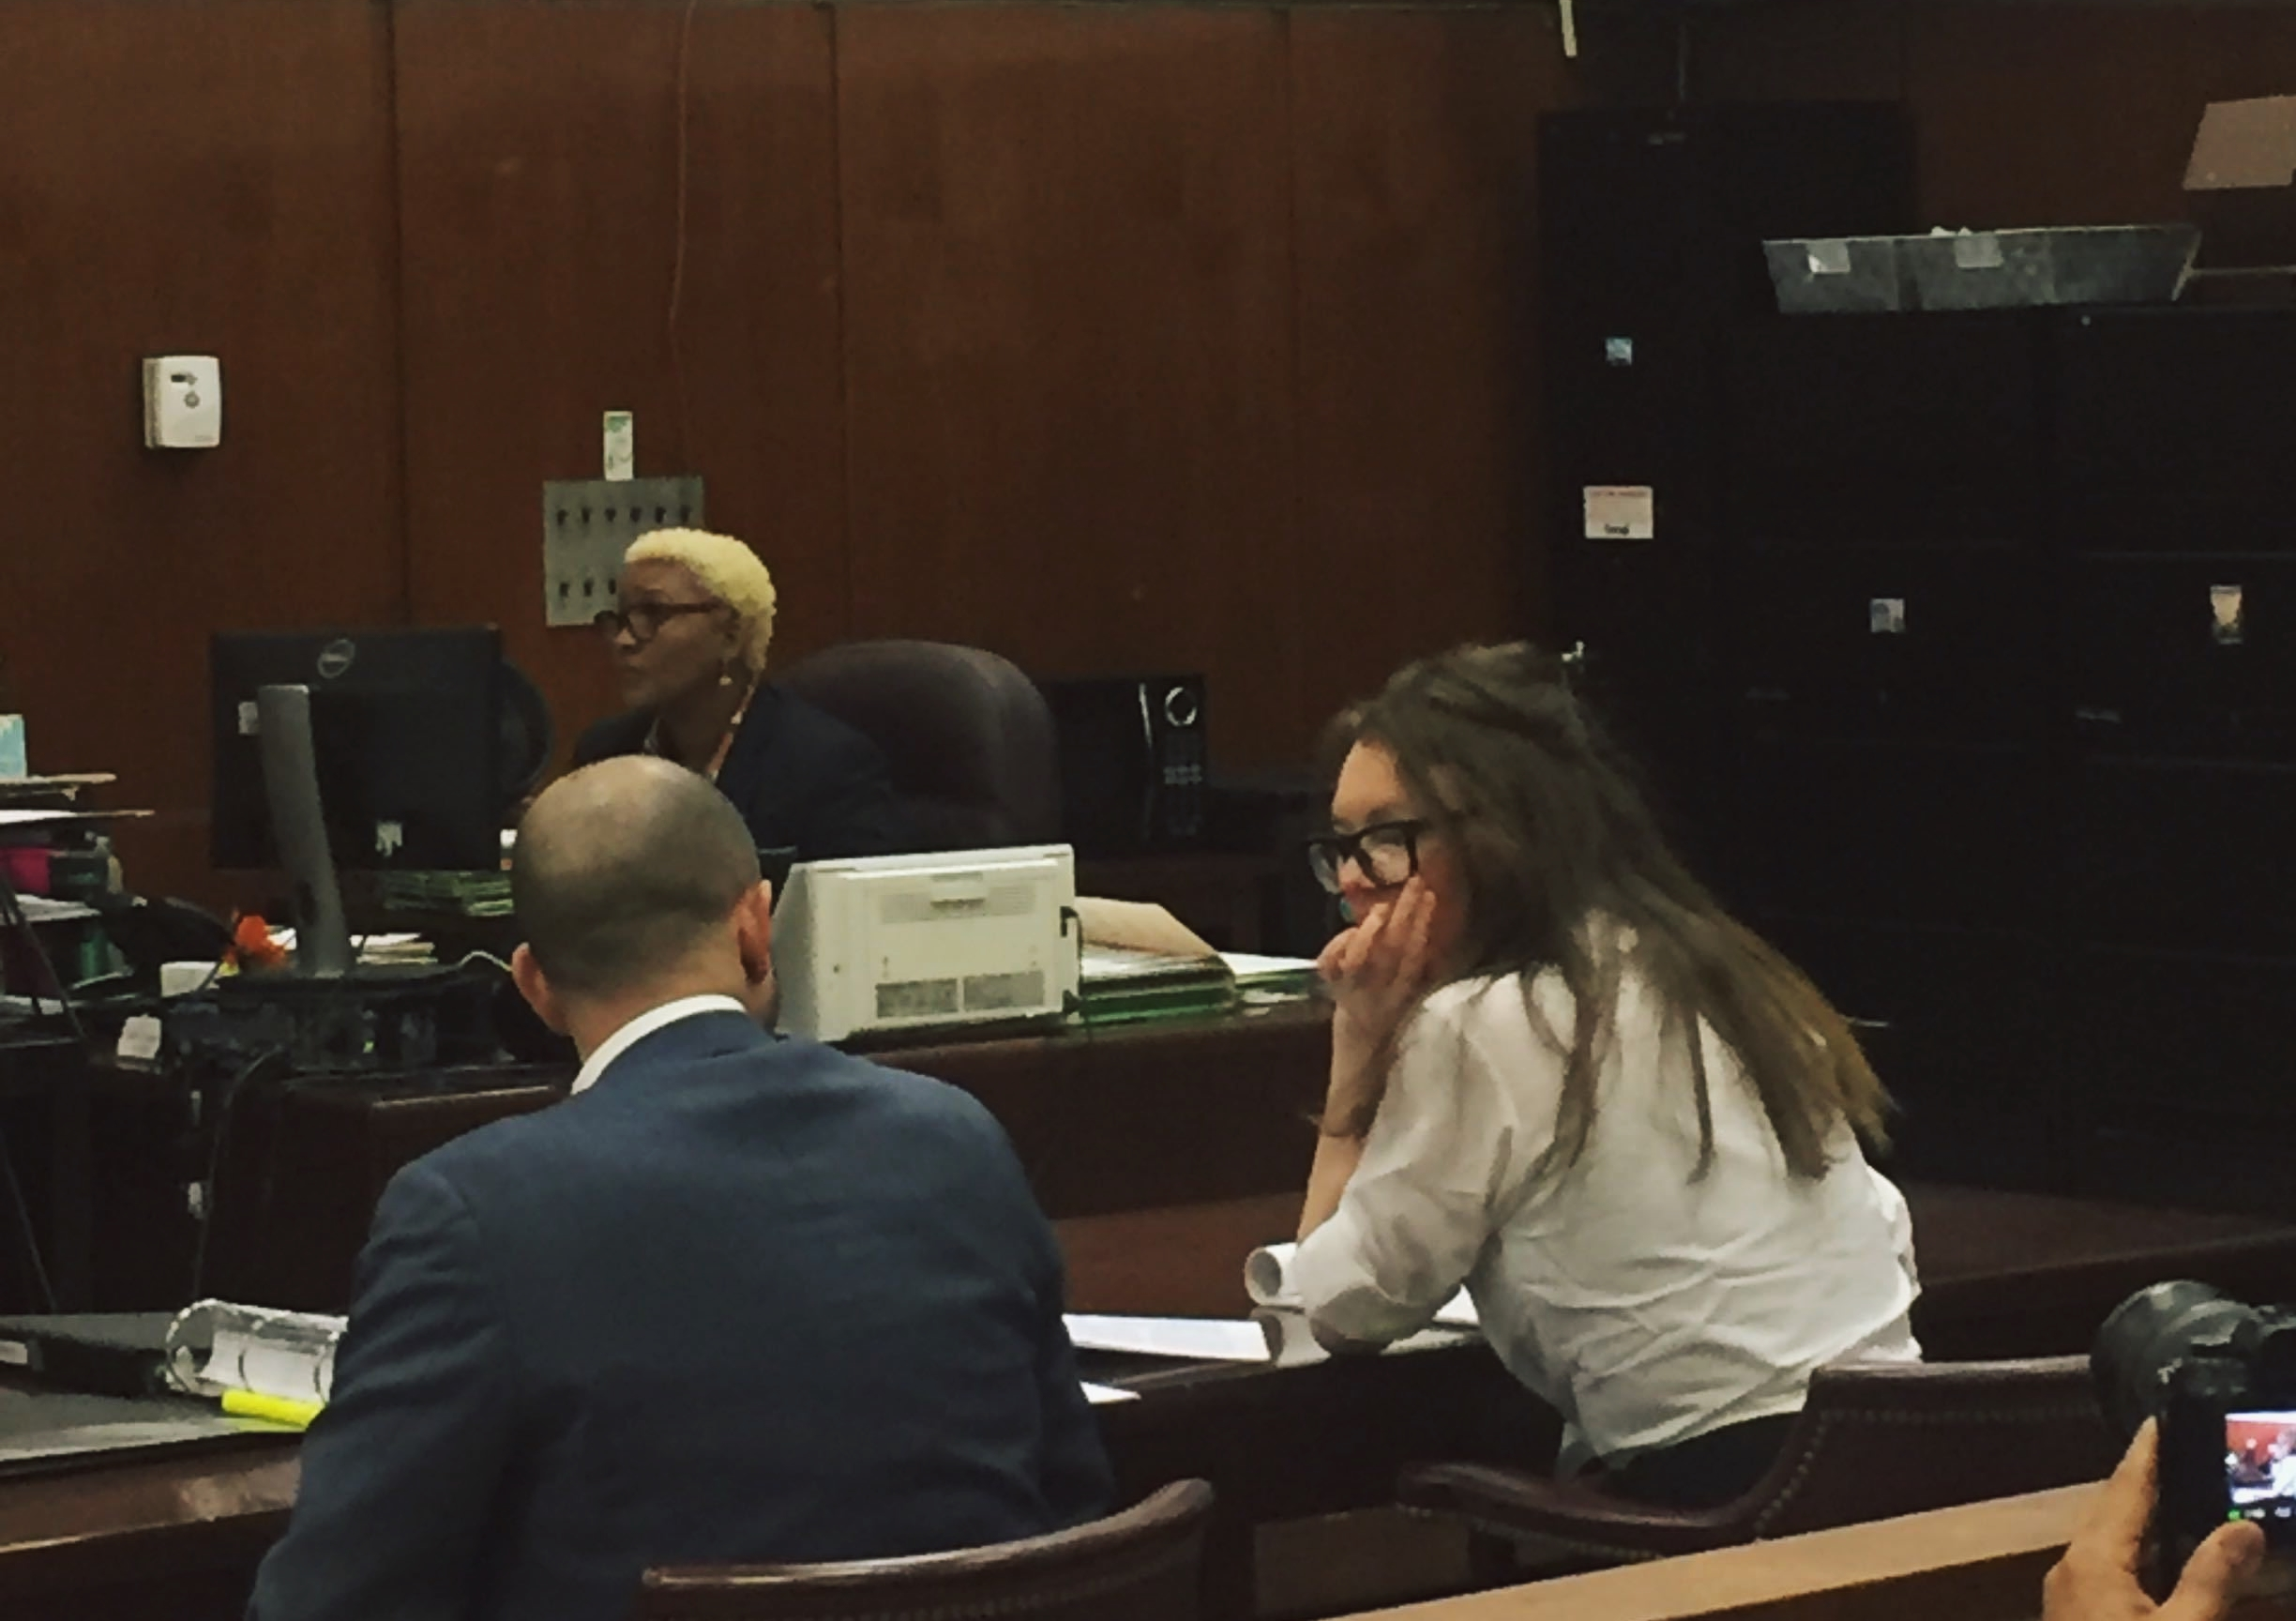 Anna Delvey in the New York courthouse, Friday April 5. Photo: Courtesy Eileen Kinsella.